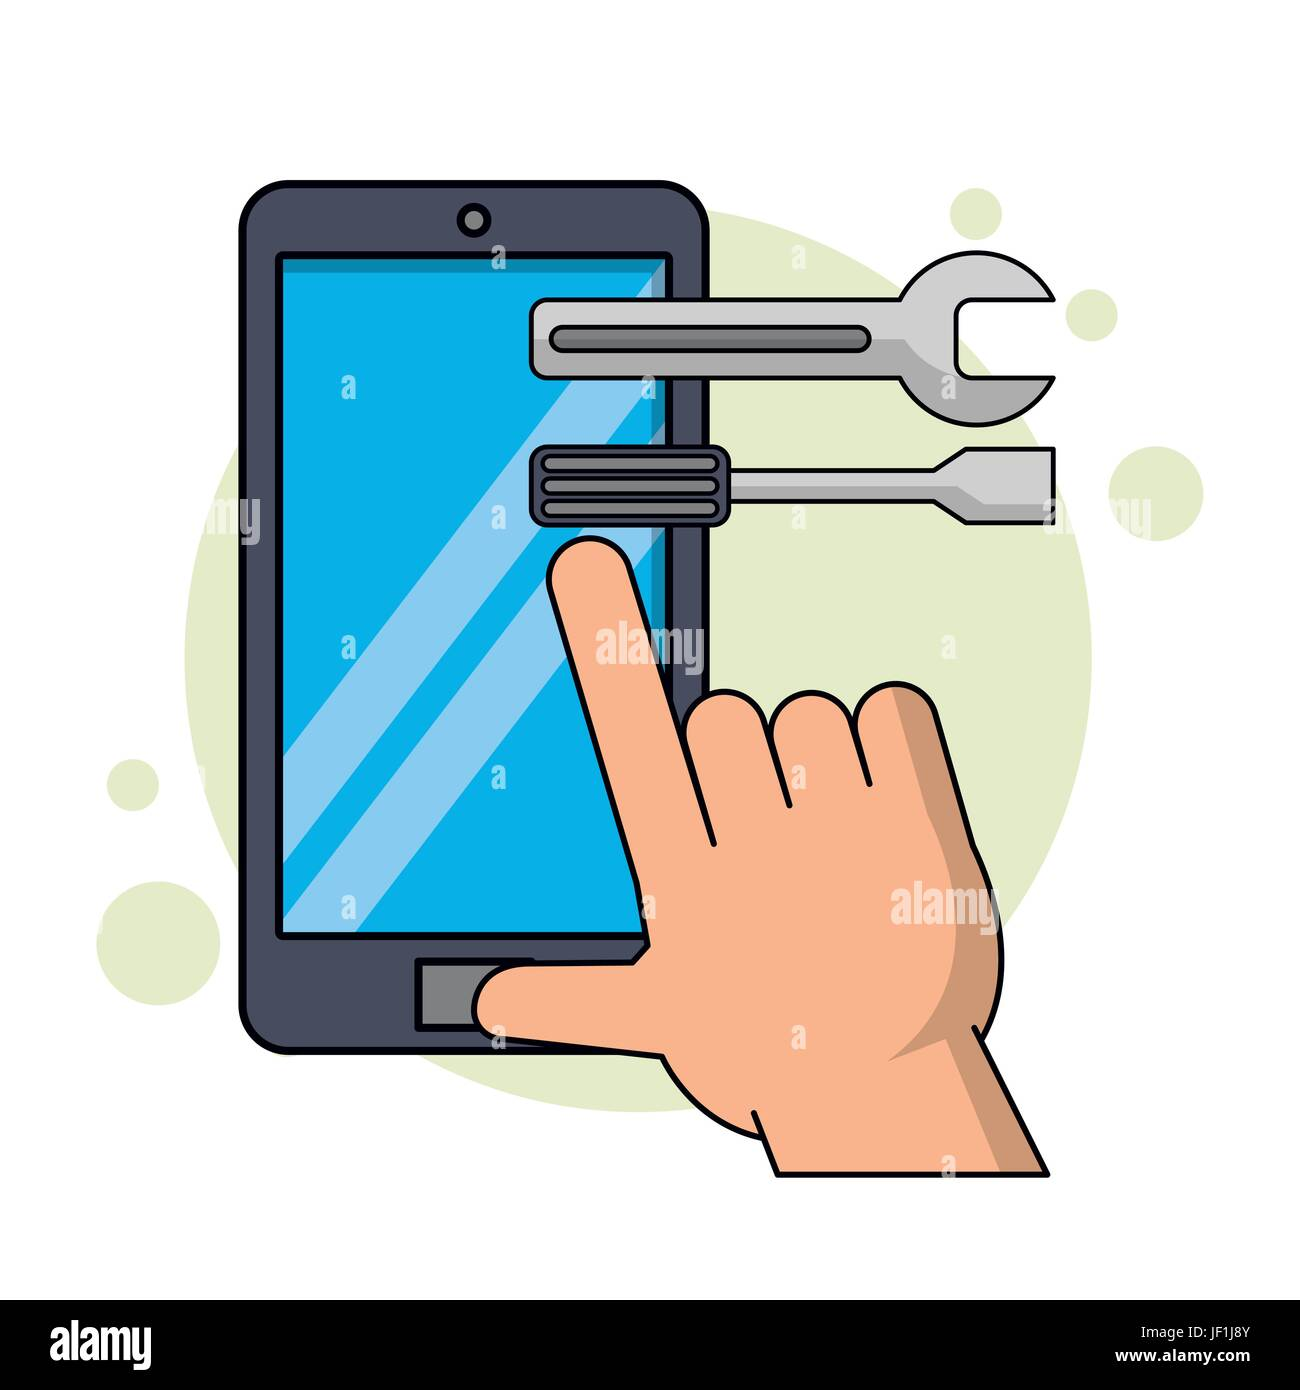 color background with smartphone and executing application of tools - Stock Image